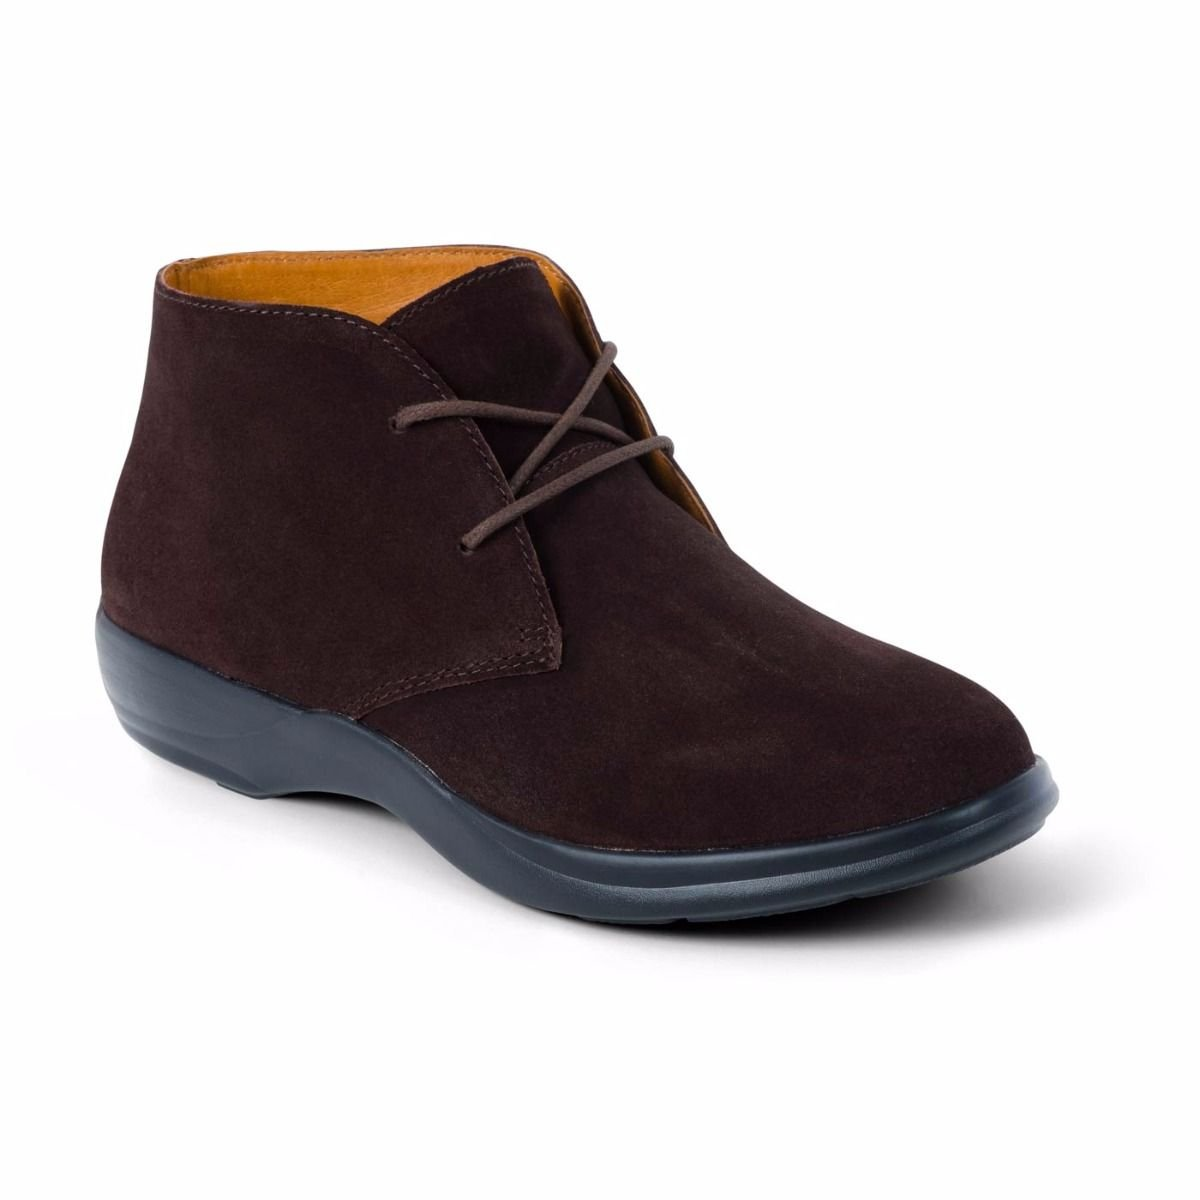 Dr. Comfort Women's Cara Casual Suede Leather Bootie Chukka Boot, Brown, 6 Medium (A/B) US